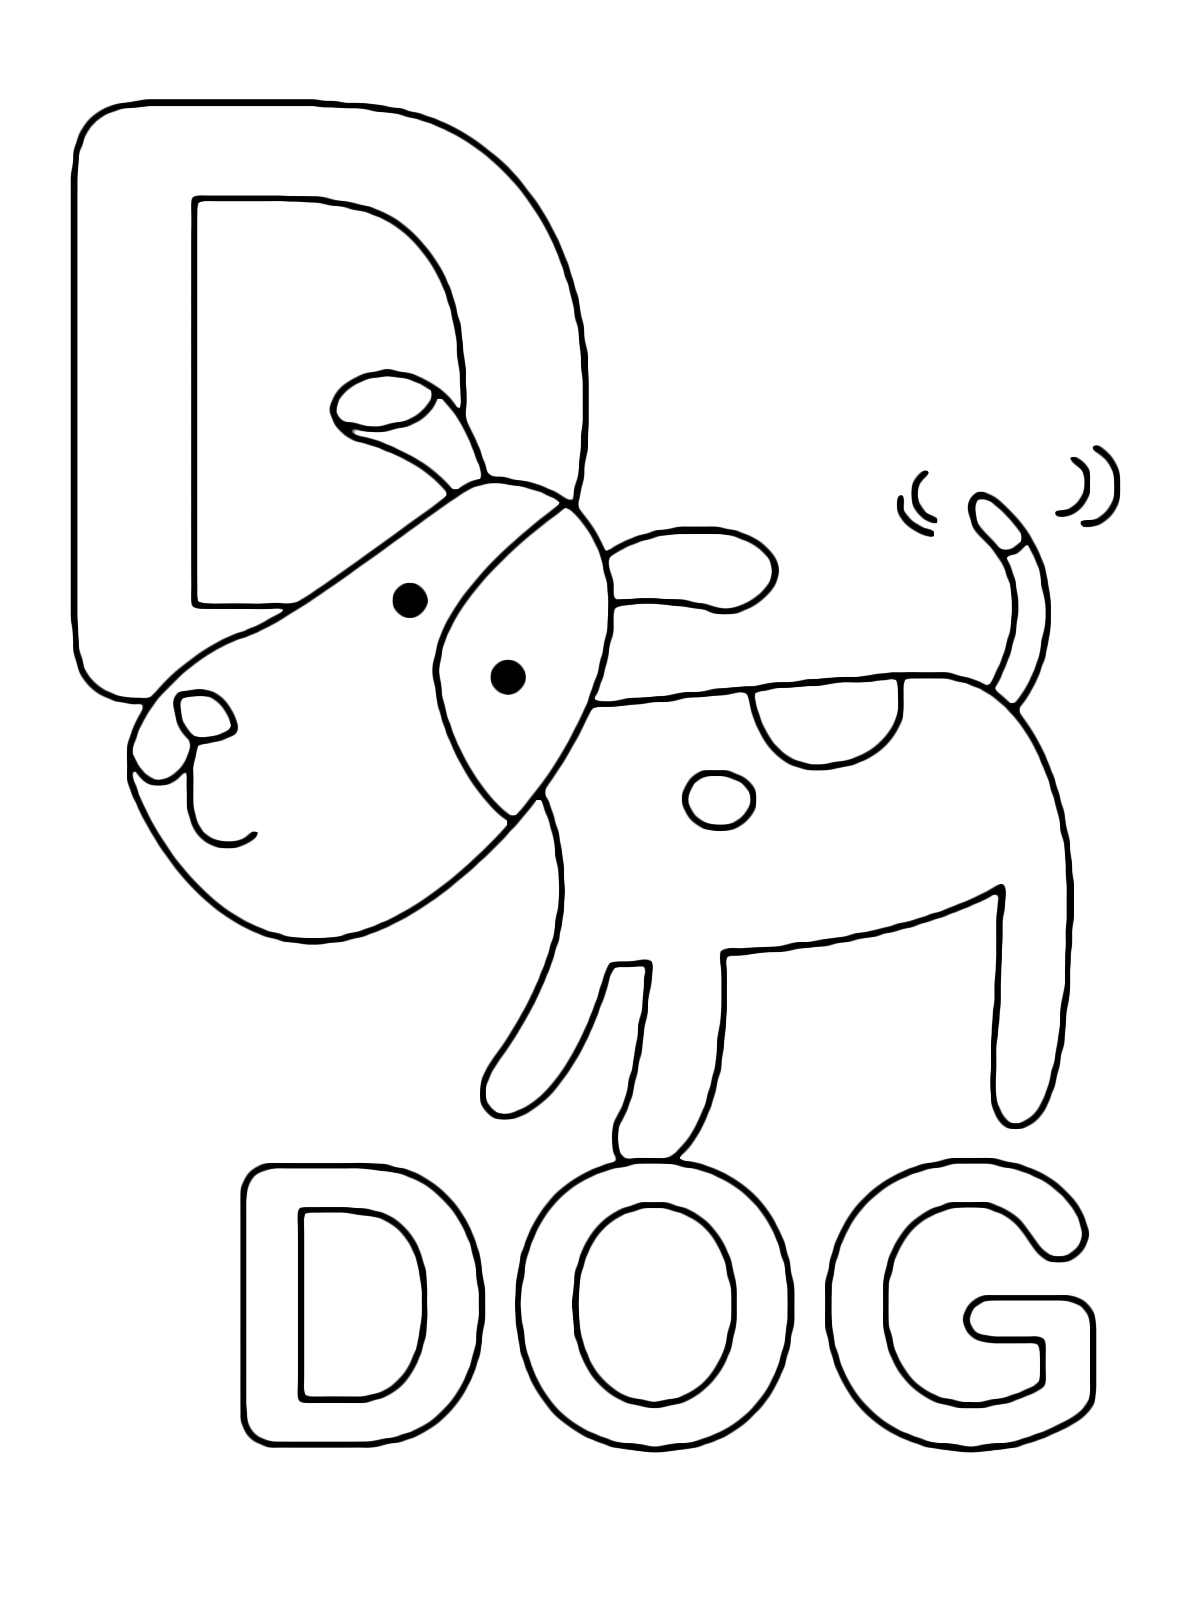 letter m coloring page - lettera d in stampatello di dog cane in inglese